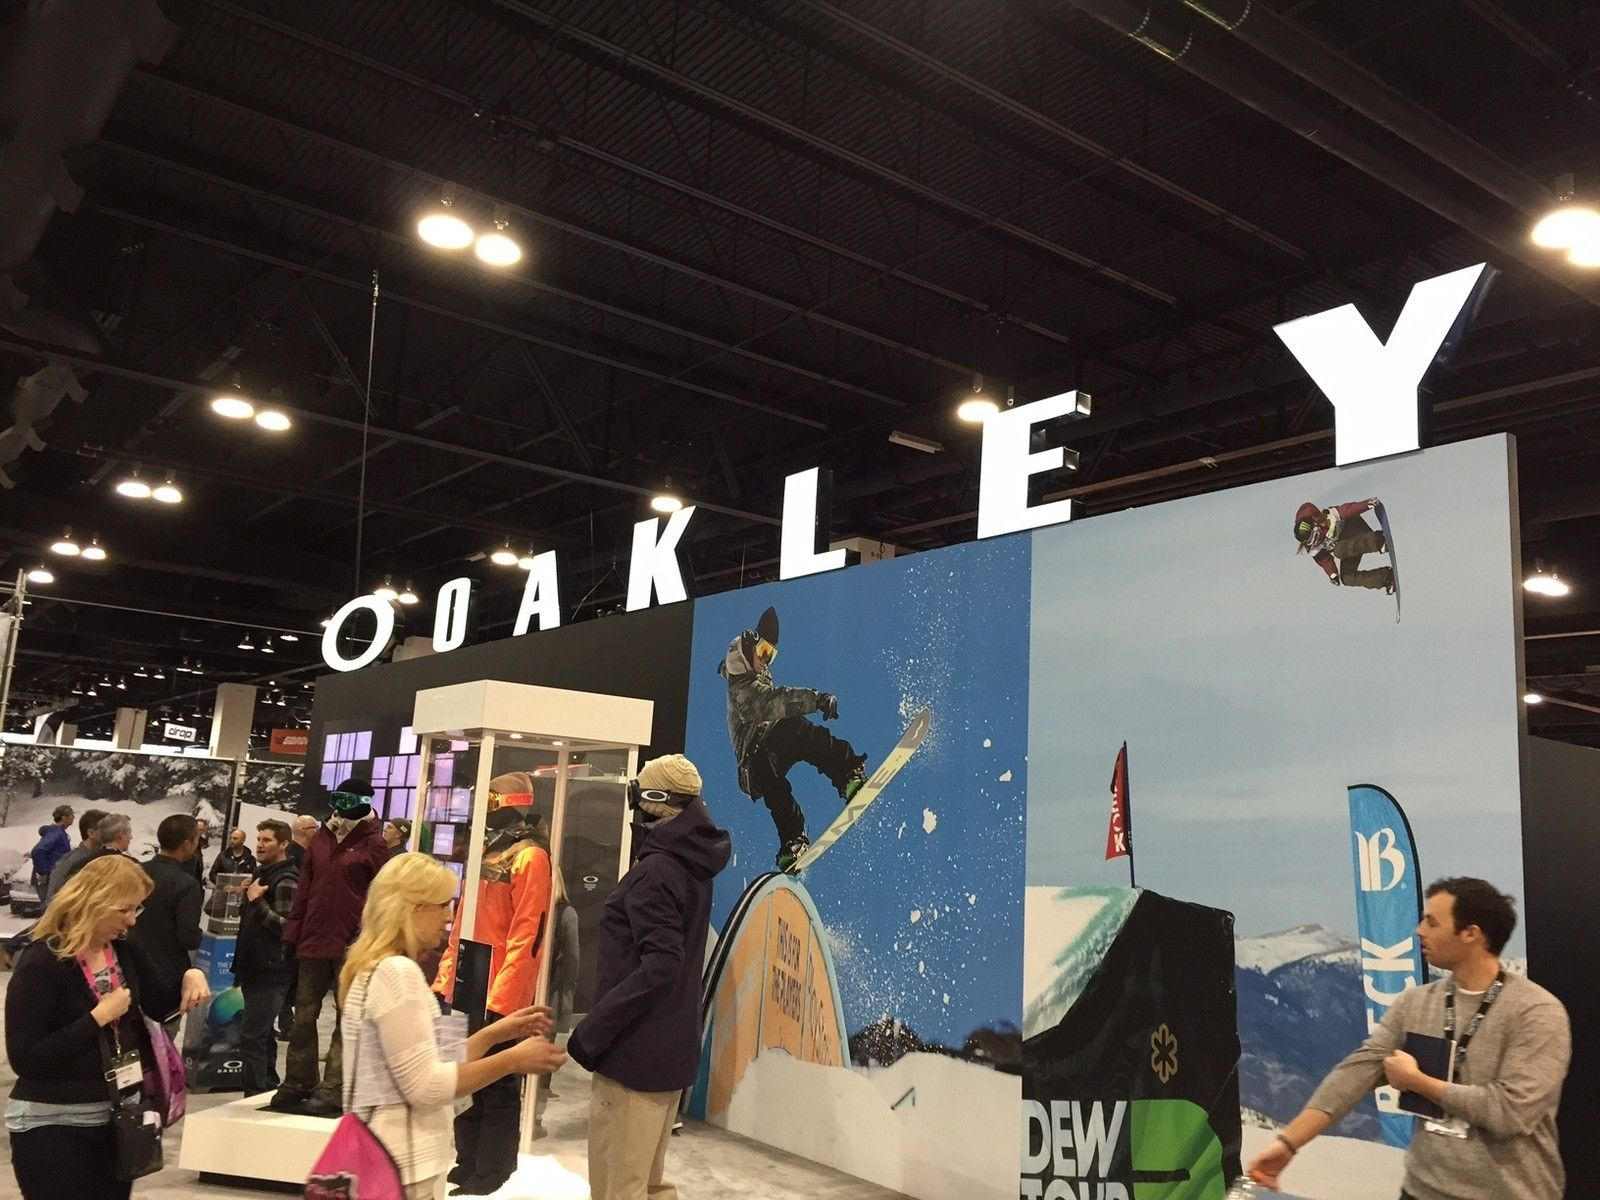 Exhibition Booth Sia : Oakley booth at the sia show in denver forum